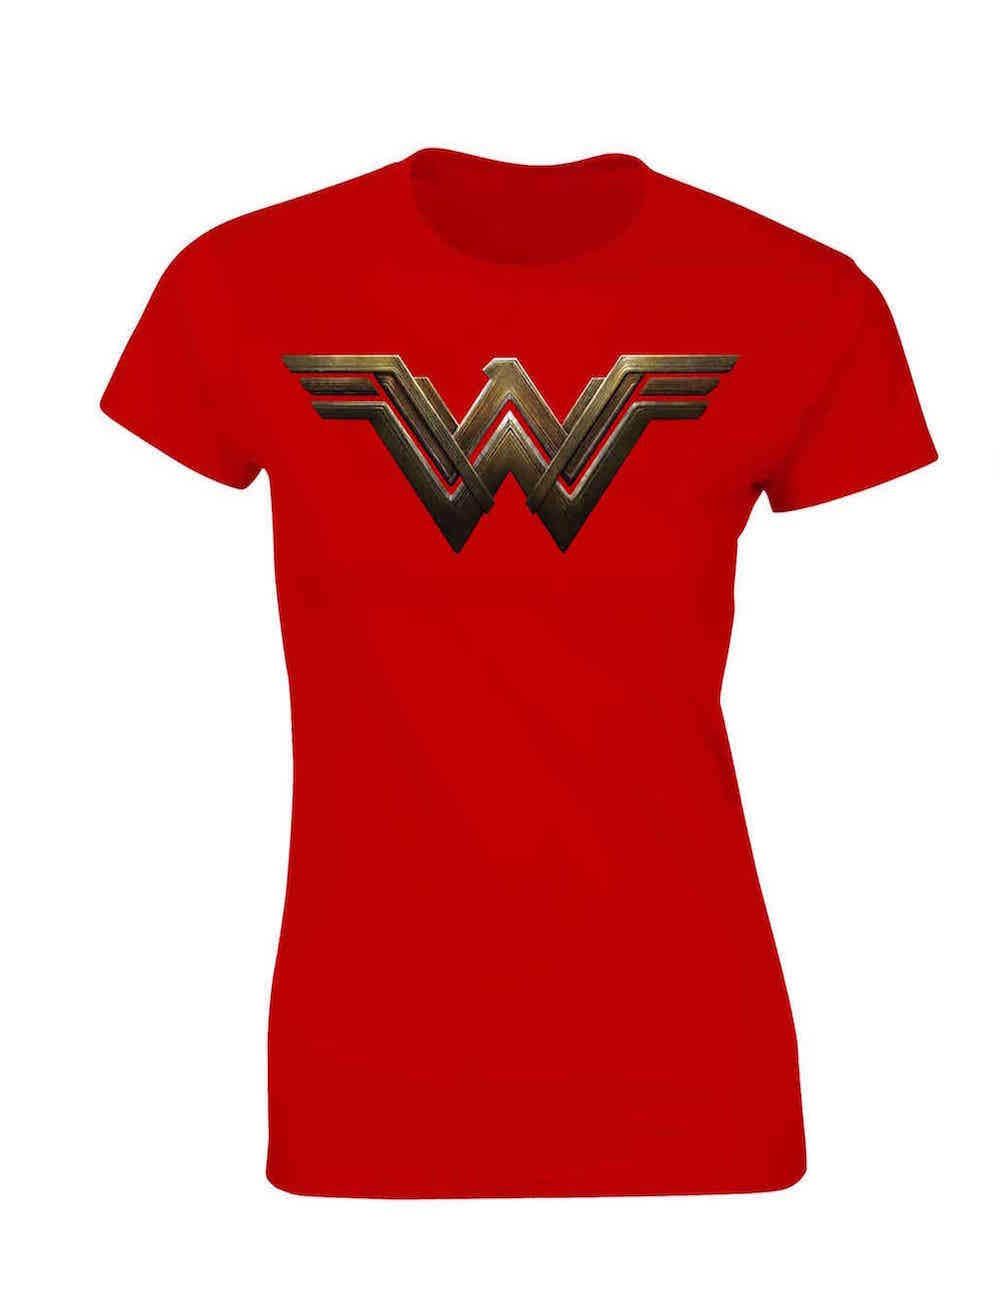 LOGO WONDER WOMAN CAMISETA ROJA CHICA T-L BATMAN VS SUPERMAN DC